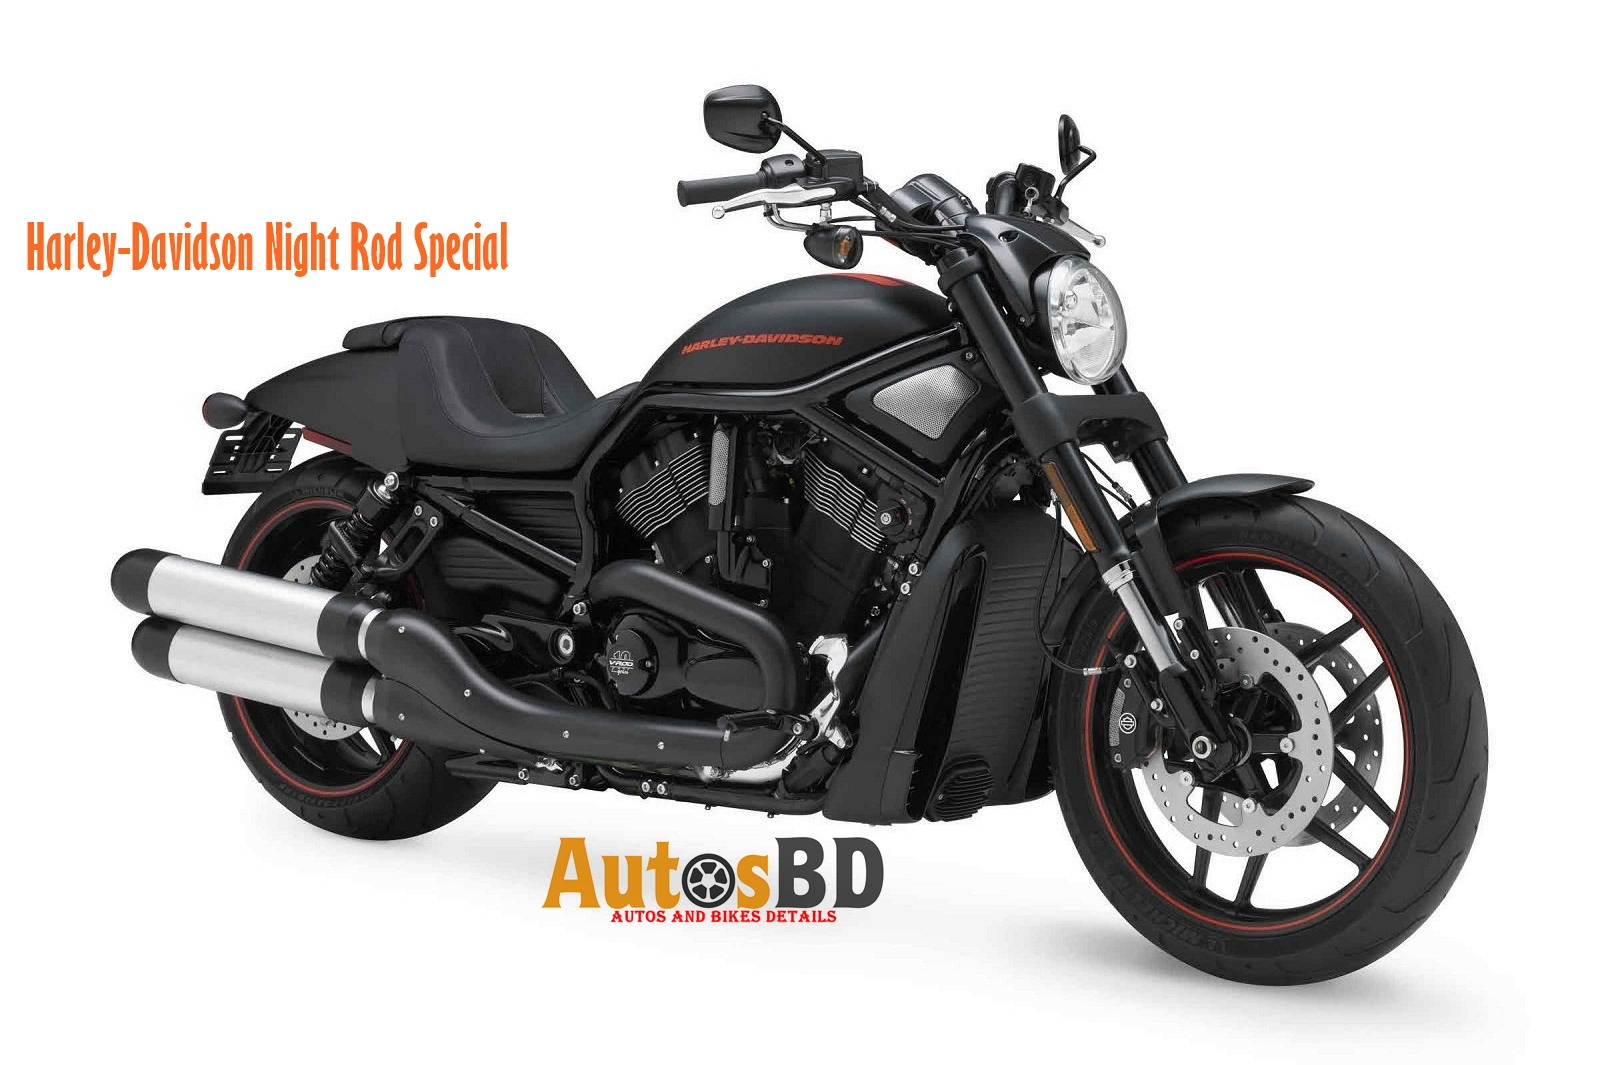 Harley-Davidson Night Rod Special Motorcycle Price in India